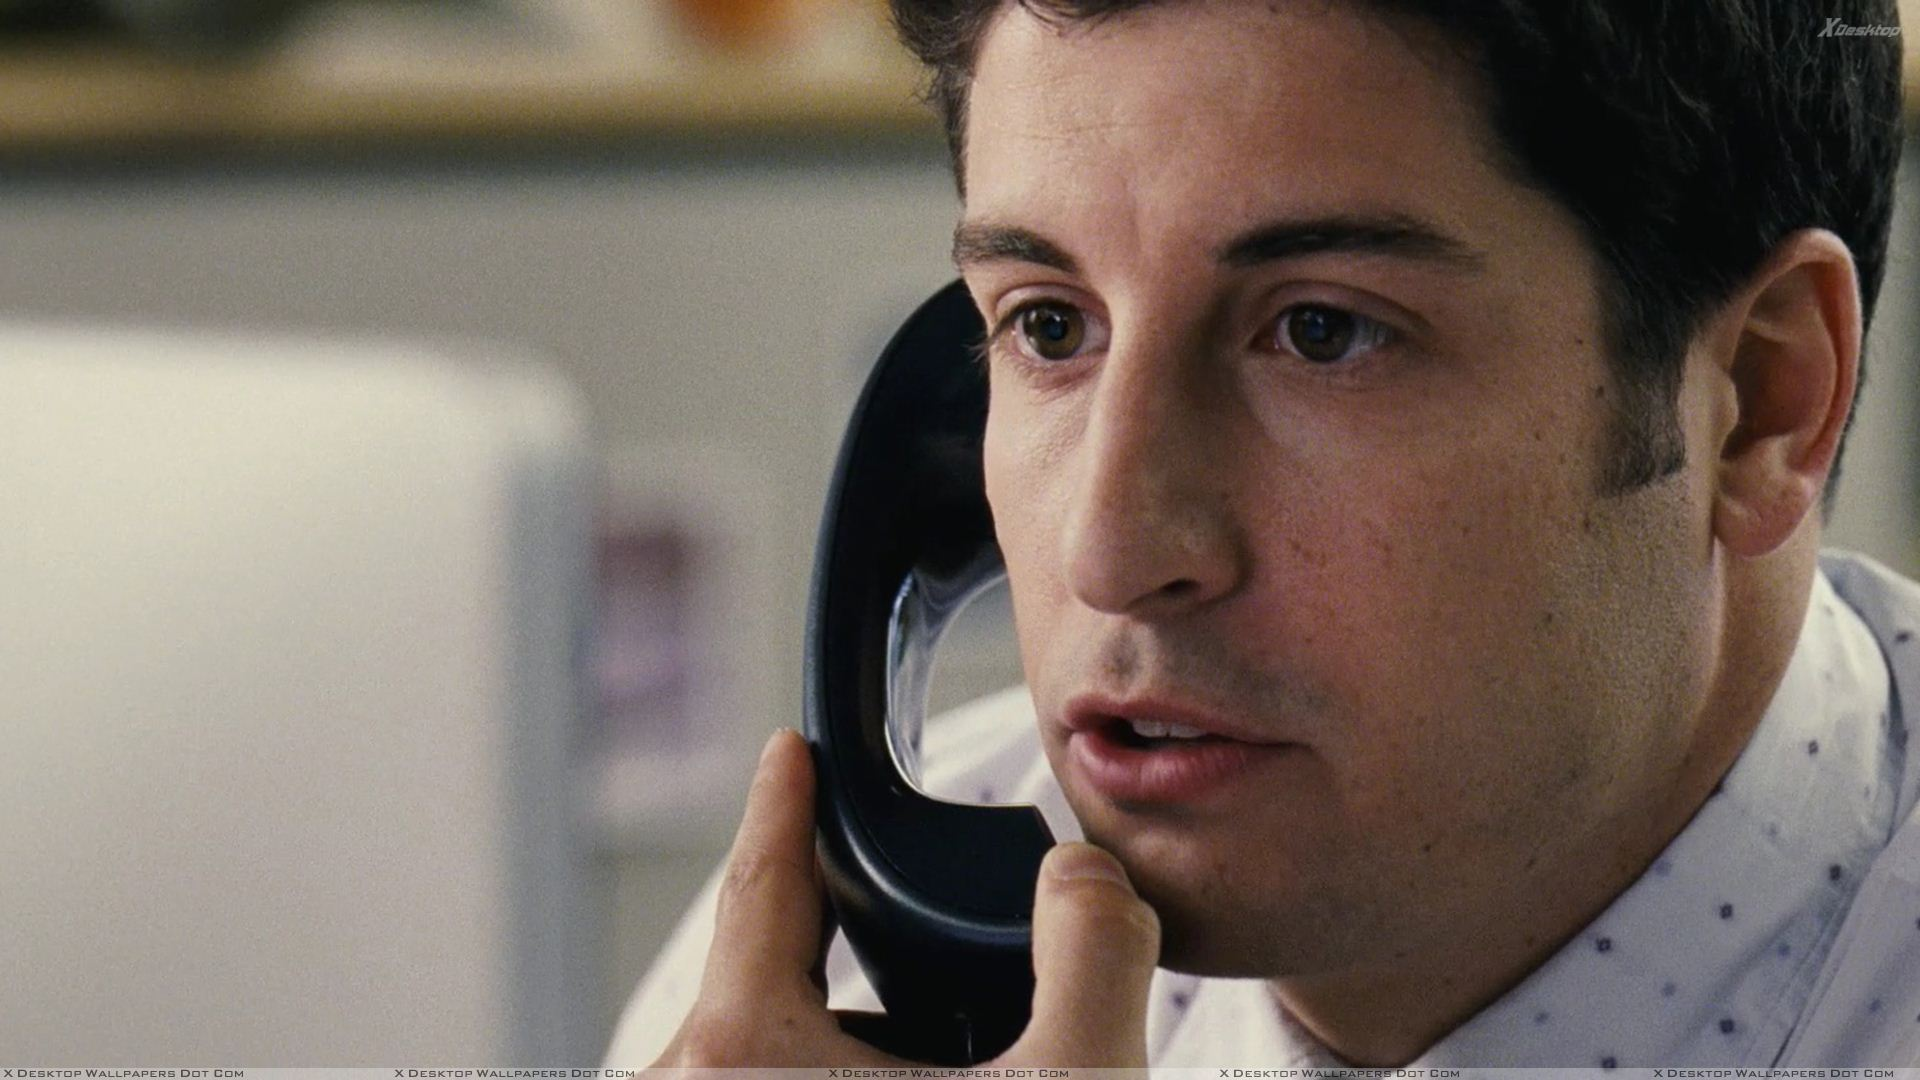 Jason Biggs Wallpapers American Reunion Jason Biggs Talking On Phone Wallpaper